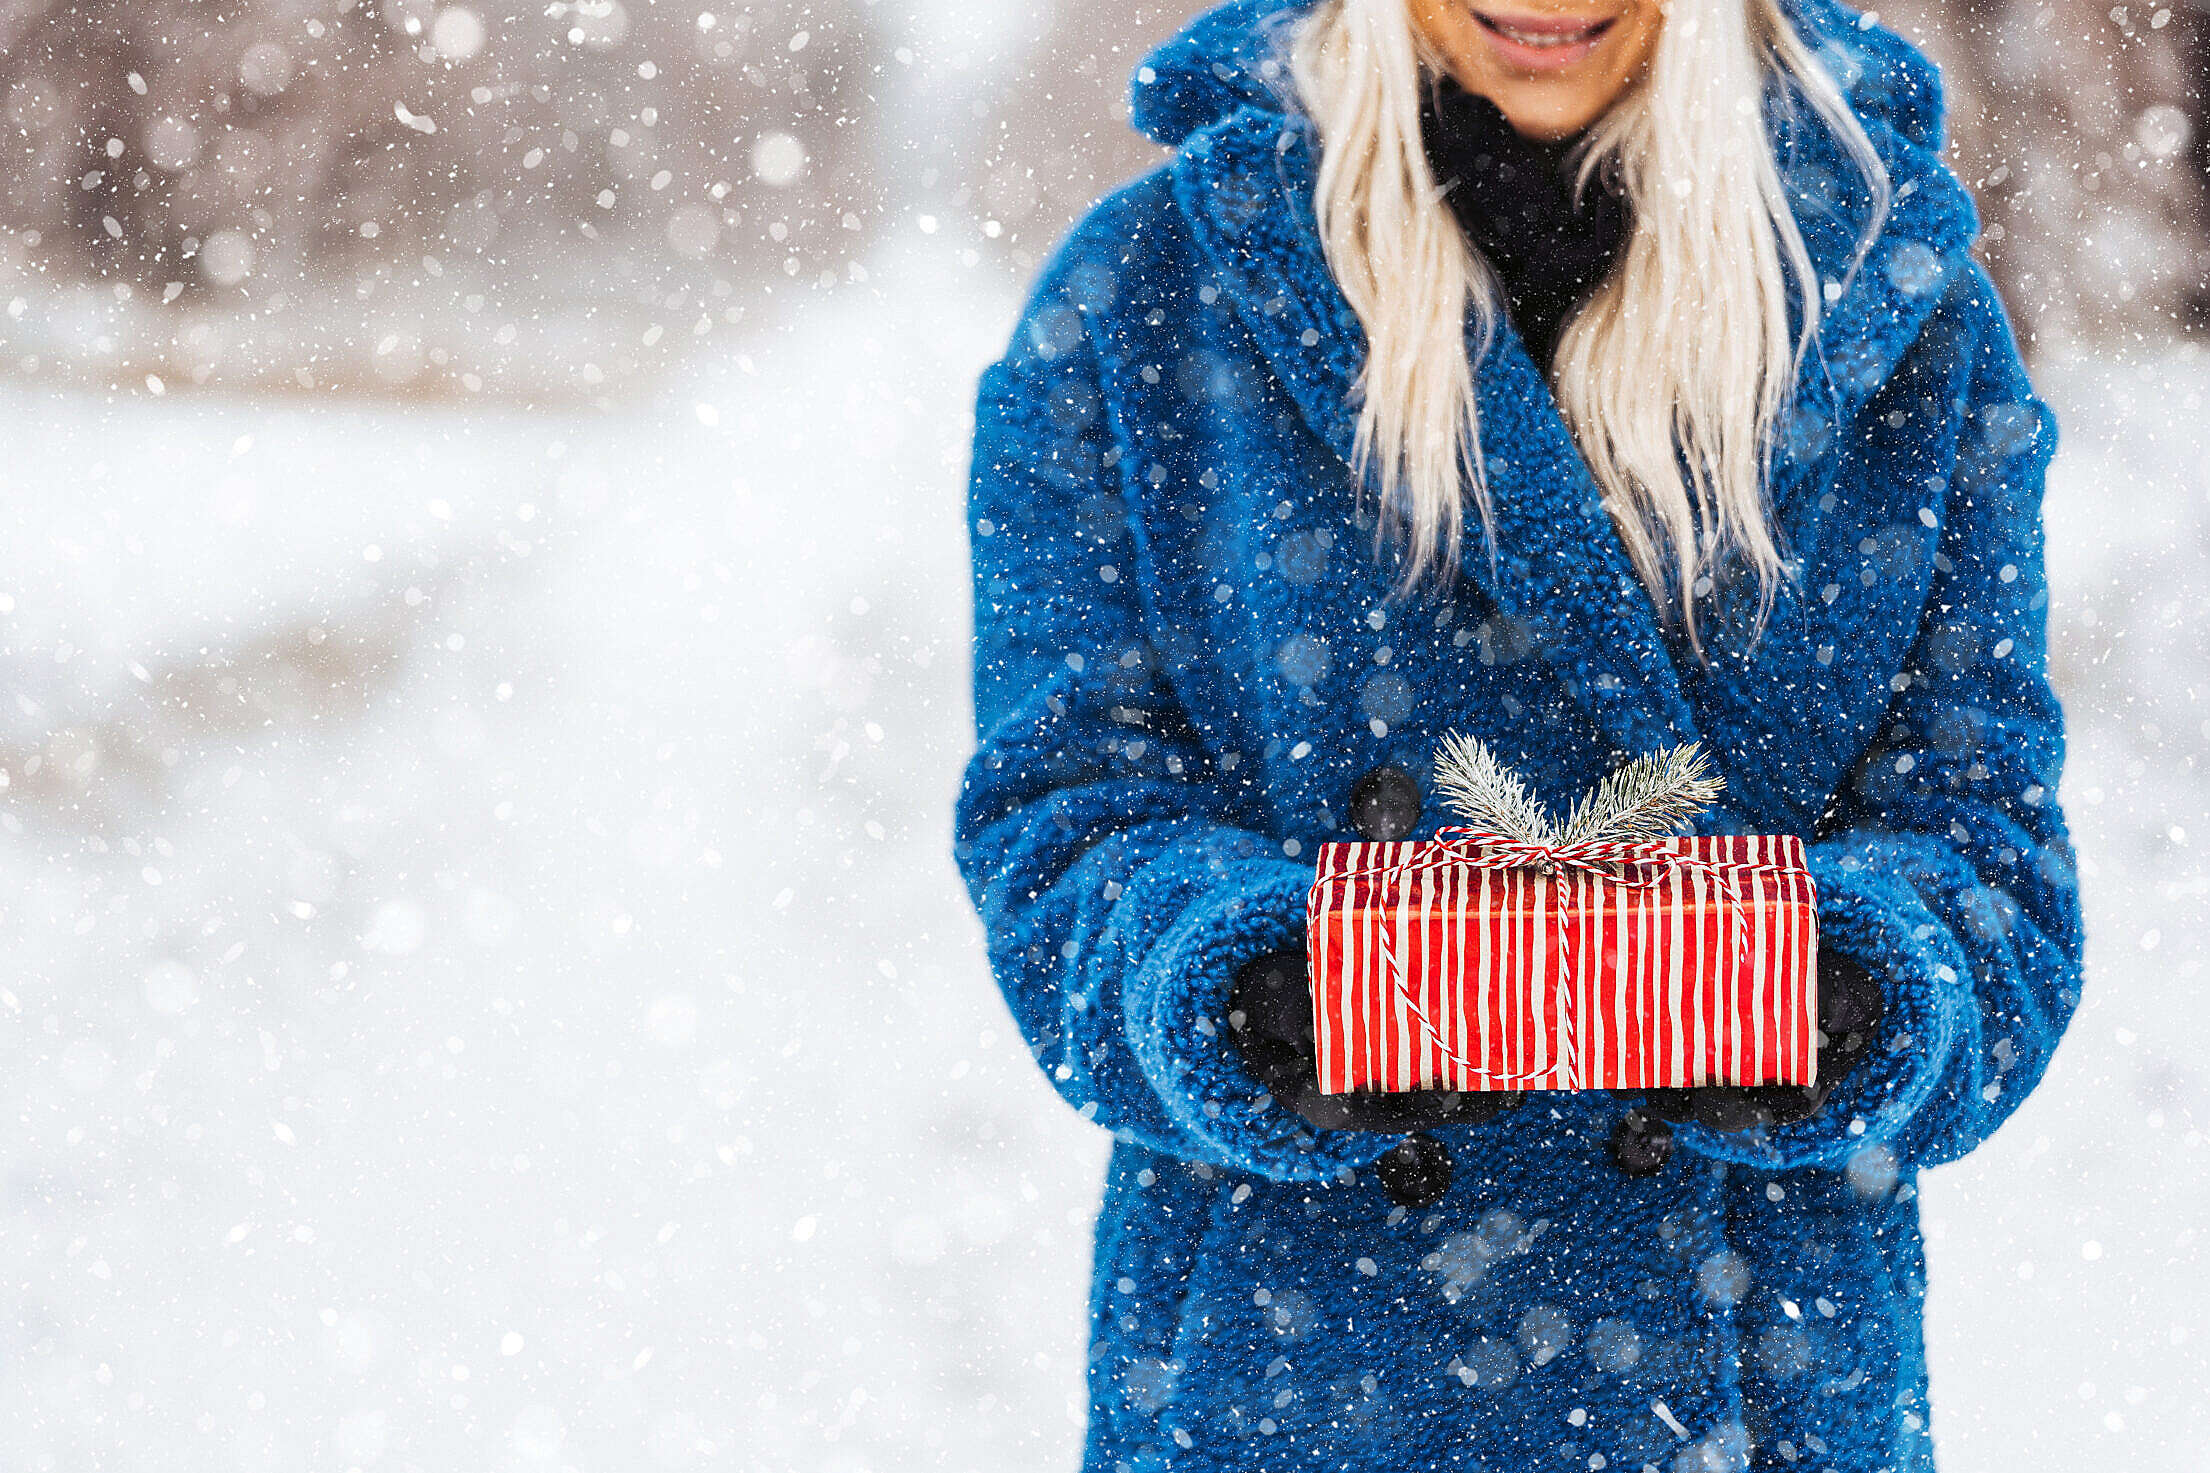 Woman Holding a Christmas Present Free Stock Photo